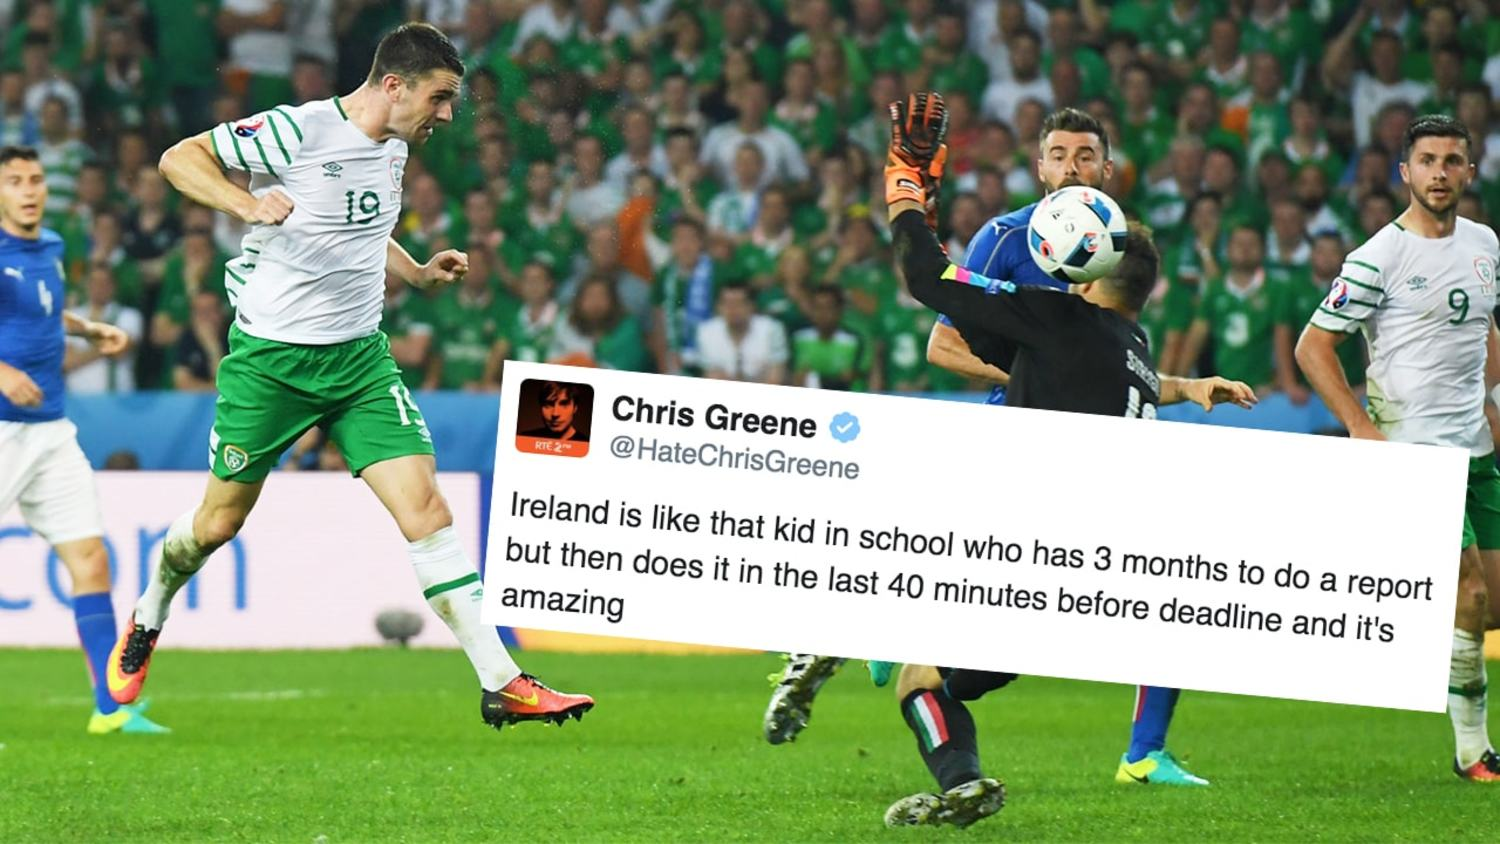 The Best Reactions to Ireland Reaching Euro 2016 Knockouts